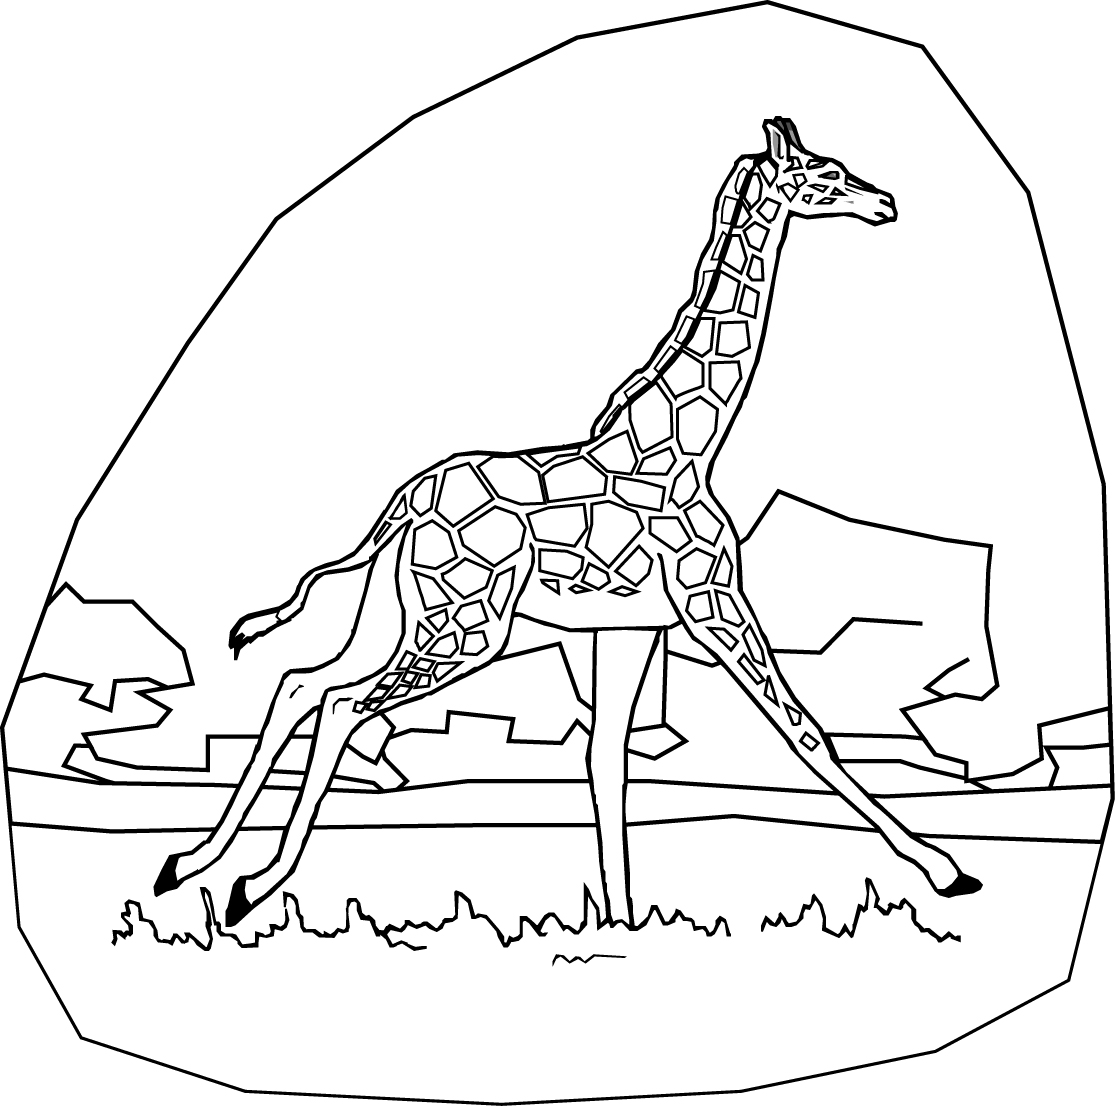 giraffes coloring pages coloring pages for kids giraffe coloring pages for kids pages giraffes coloring